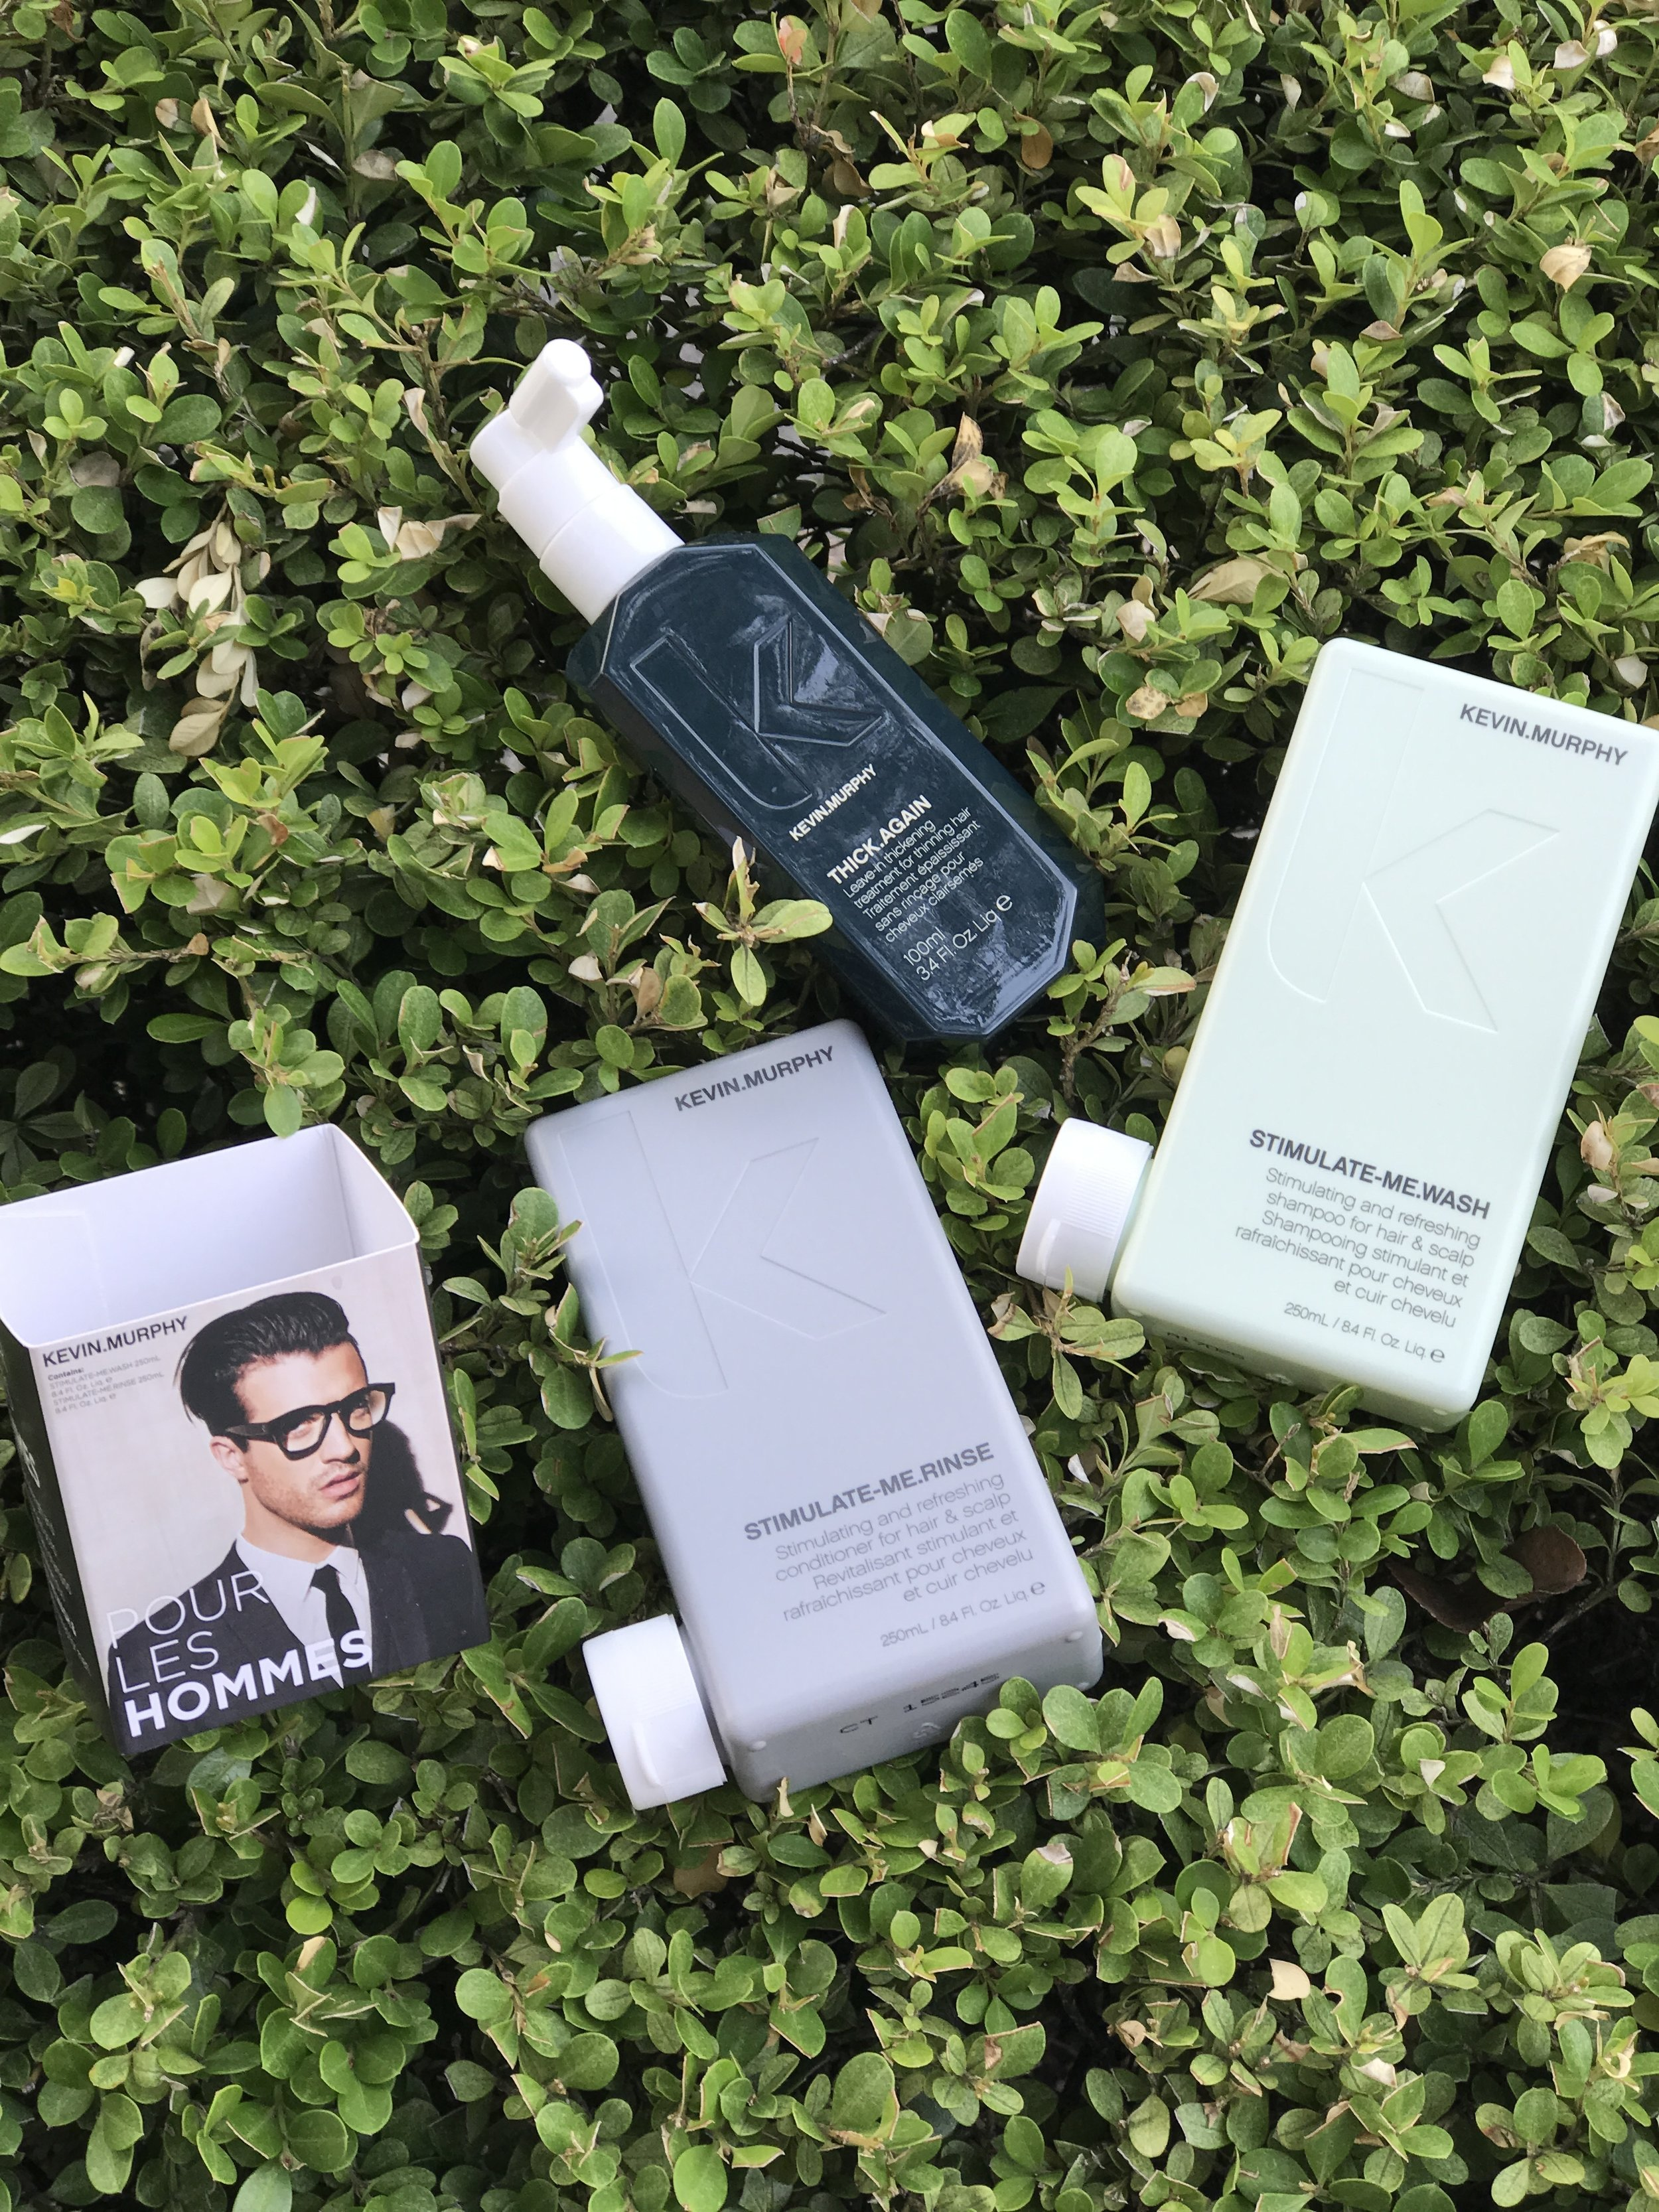 Stimulate-Me Gift Set - Buy the Stimulate-Me Wash and the Thick.Again, receive the Stimulate-Me Rinse for Free.Gift Set $68 (original $97)